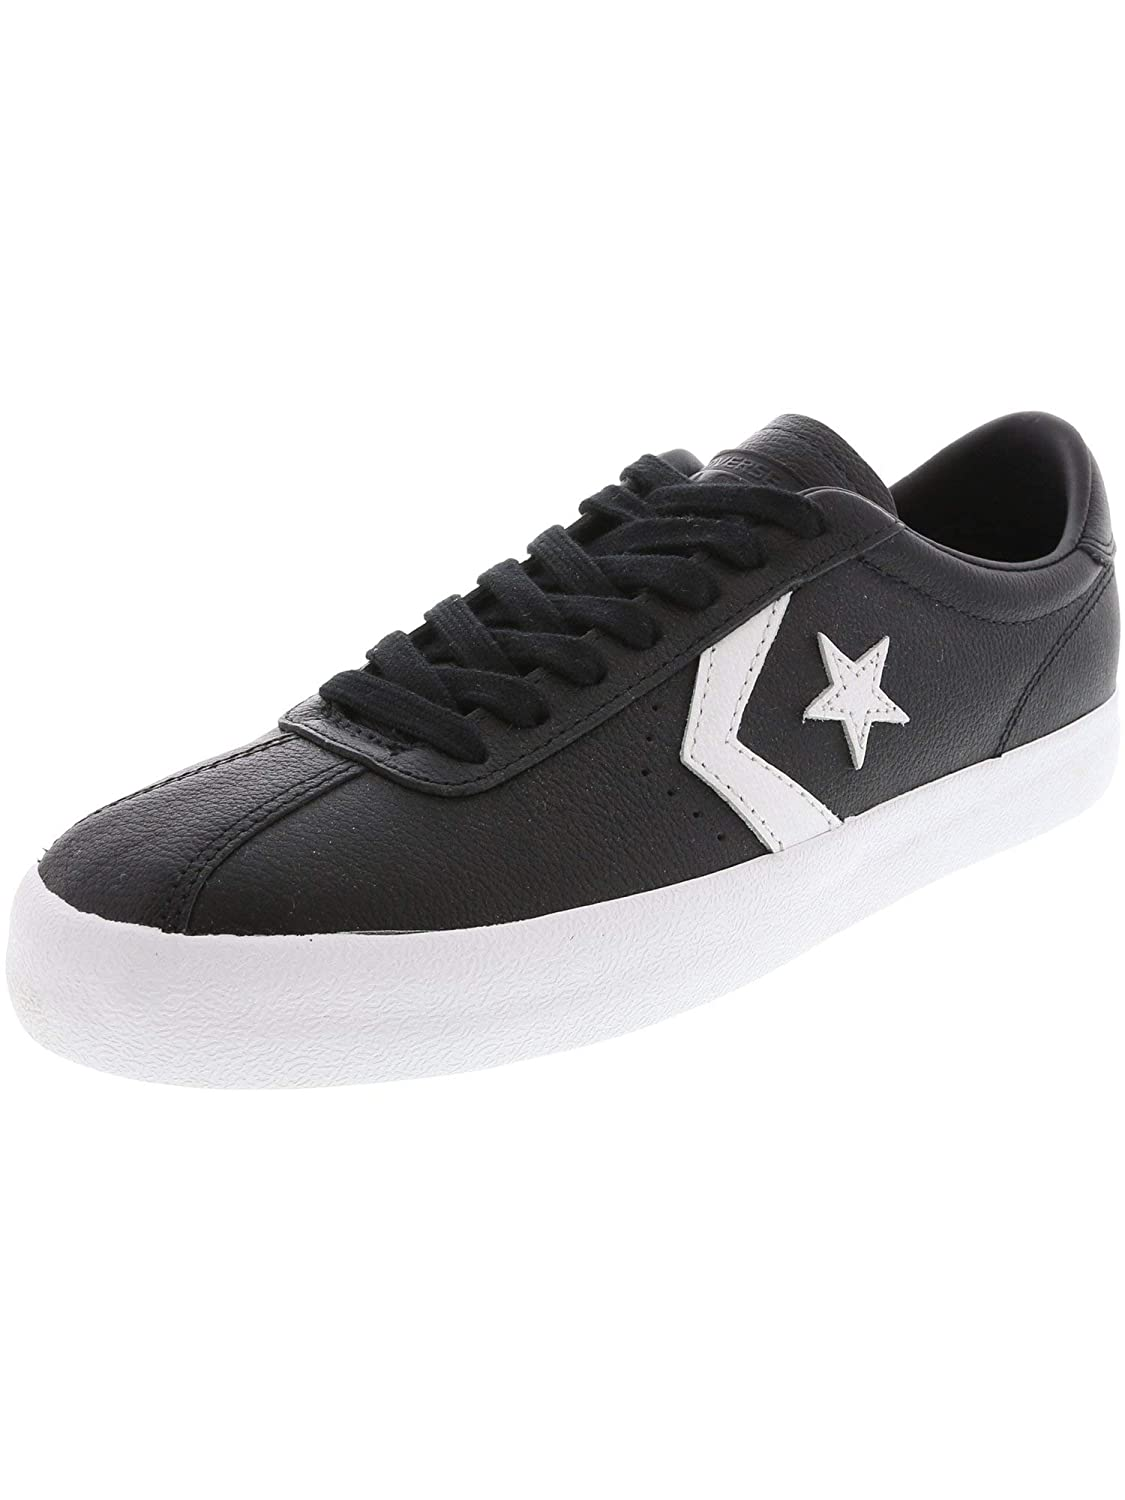 4188a930a81a Converse Breakpoint OX Unisex Adults  Low-Top Sneakers